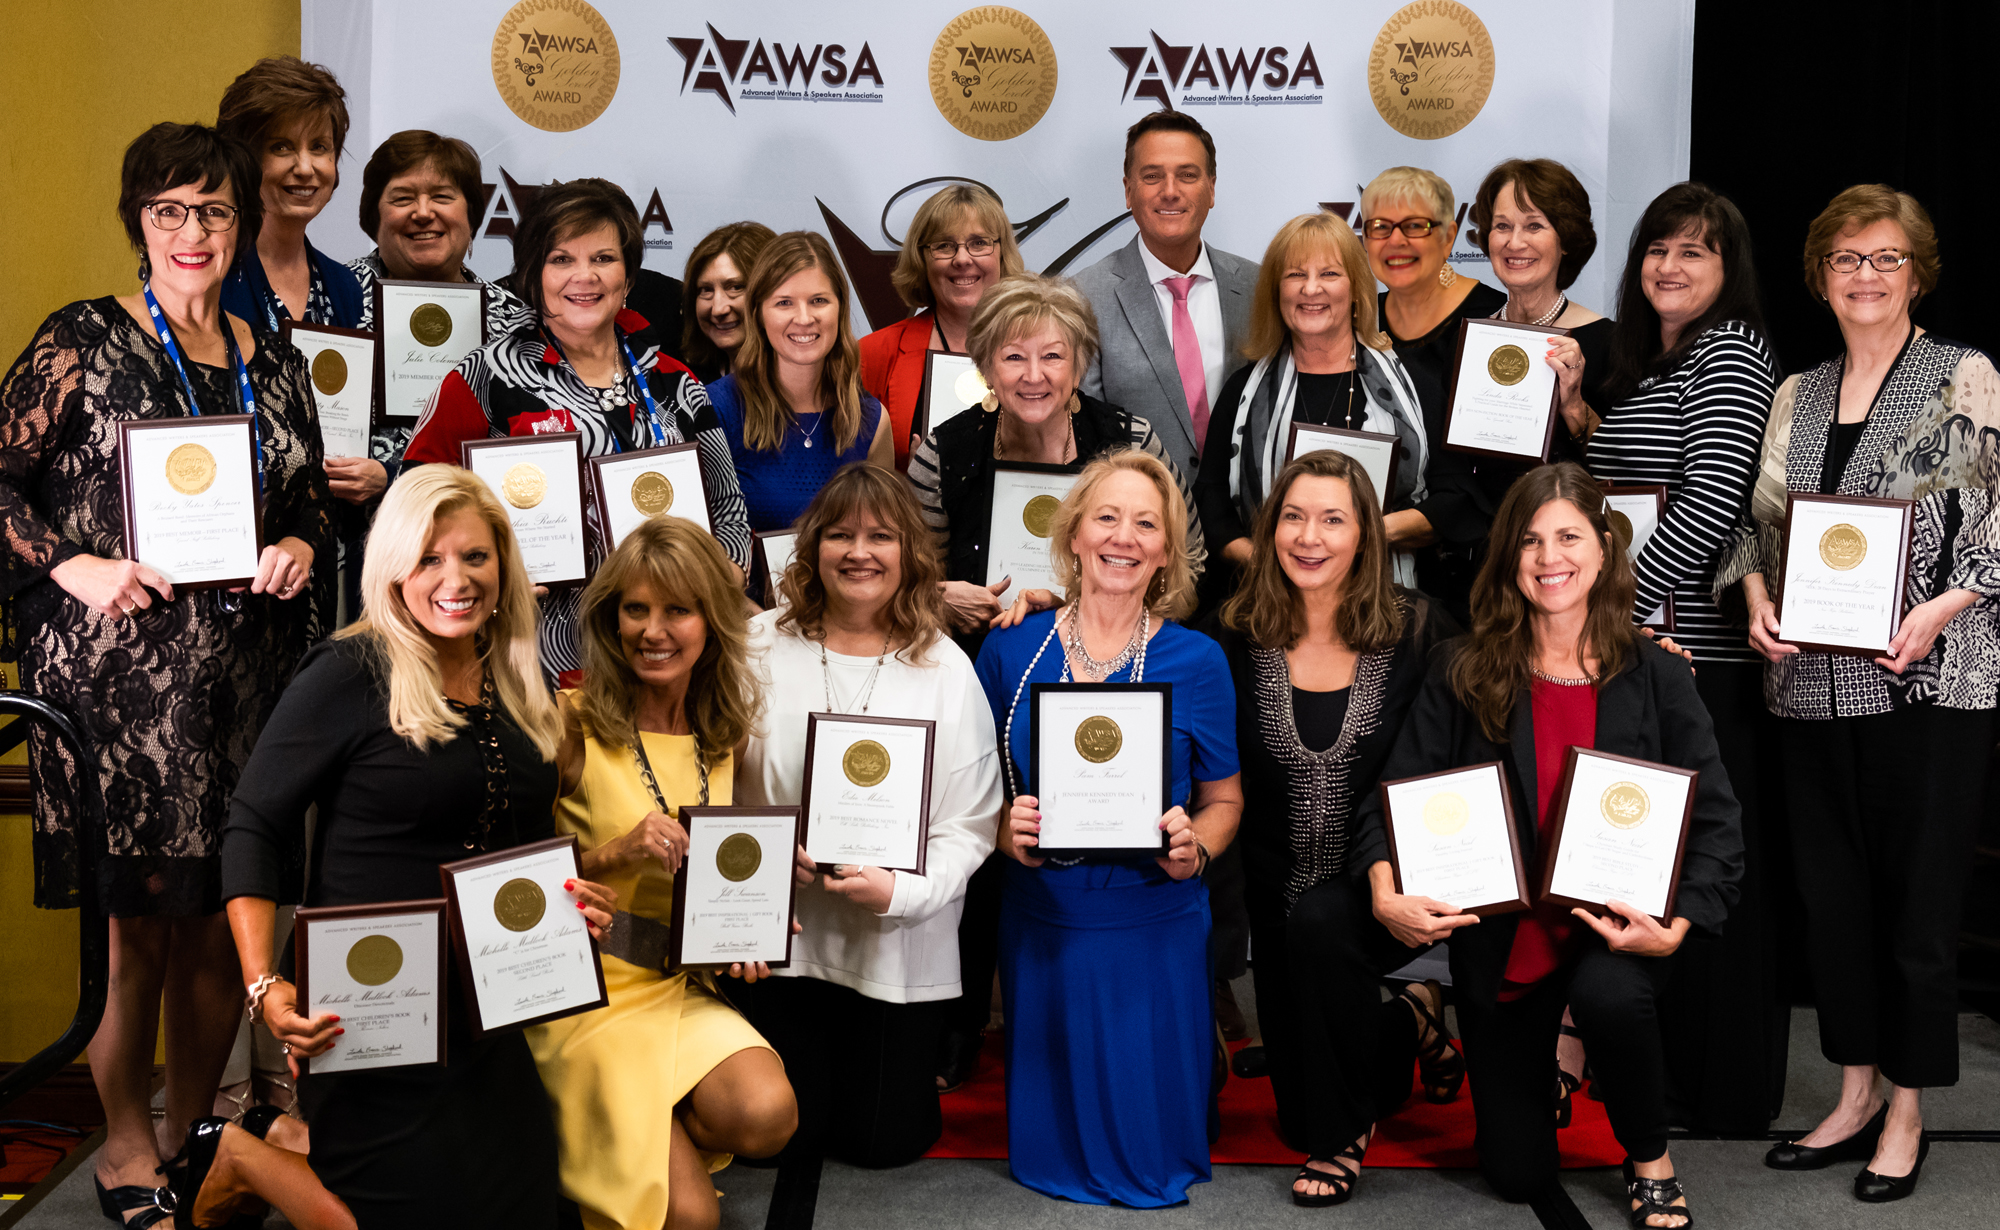 kregel-and-gilead-titles-receive-awsa-golden-scroll-awards